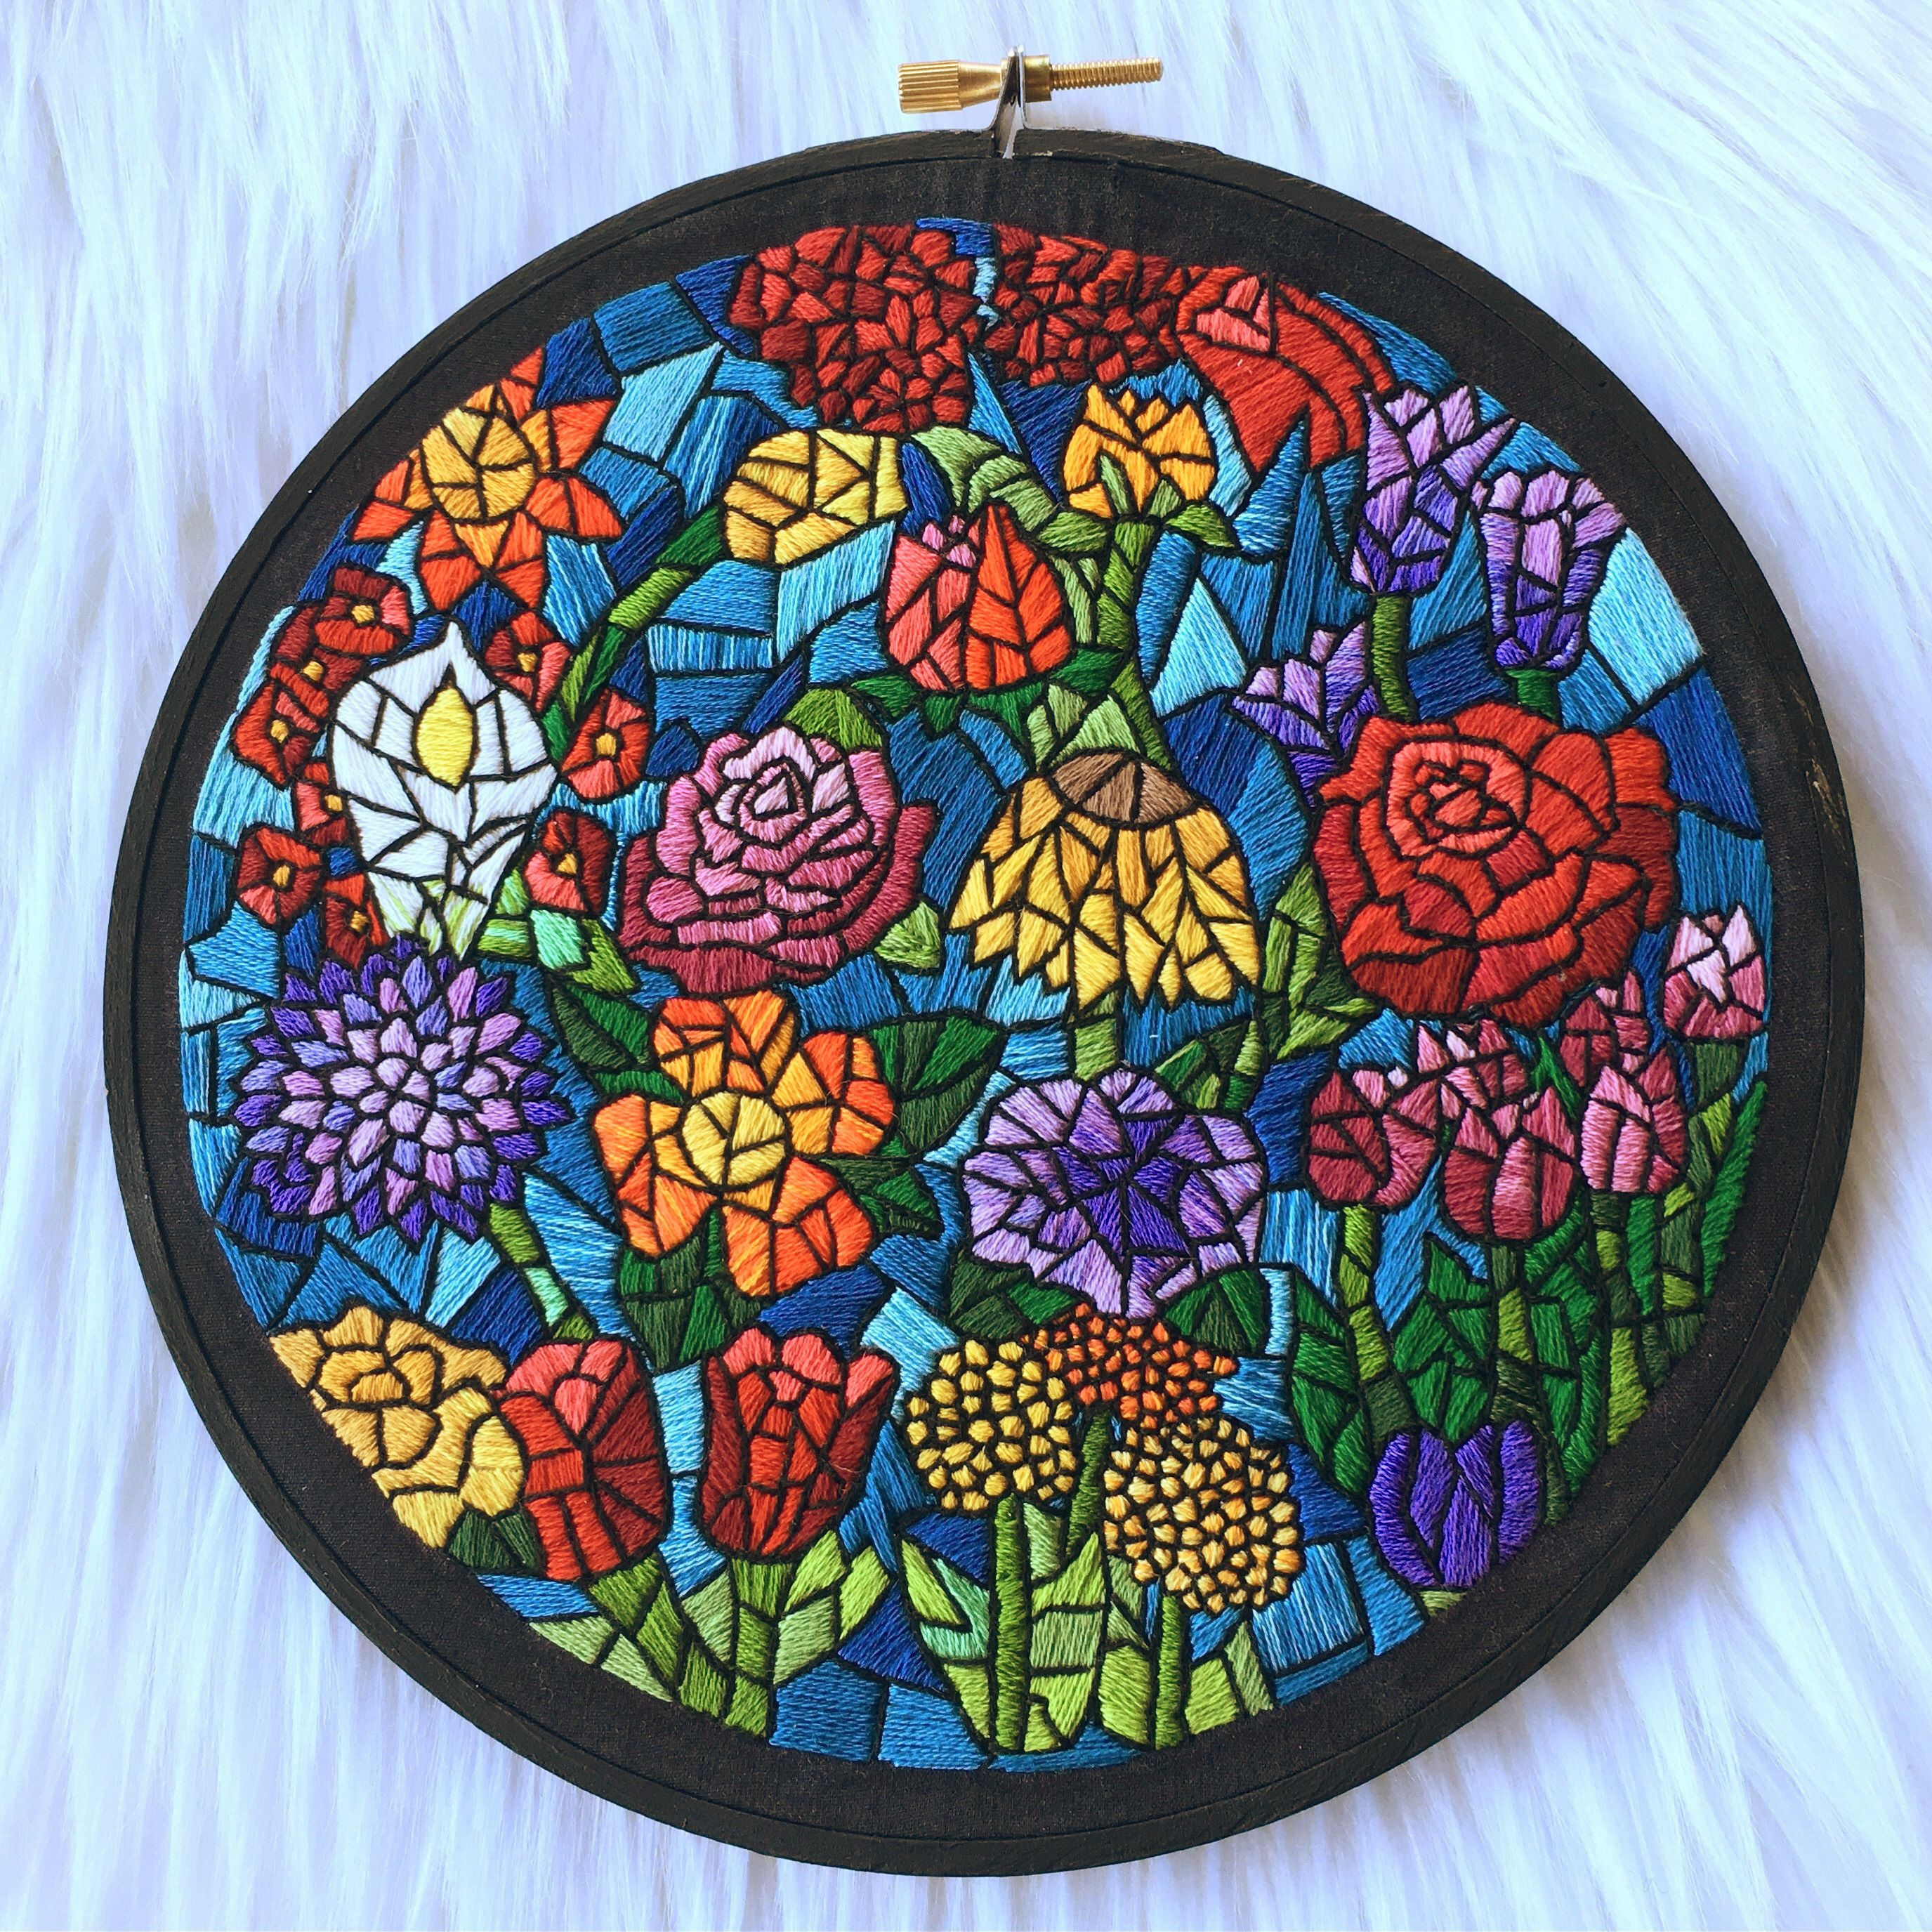 Floral stained glass embroidery pattern in an embroidery hoop.